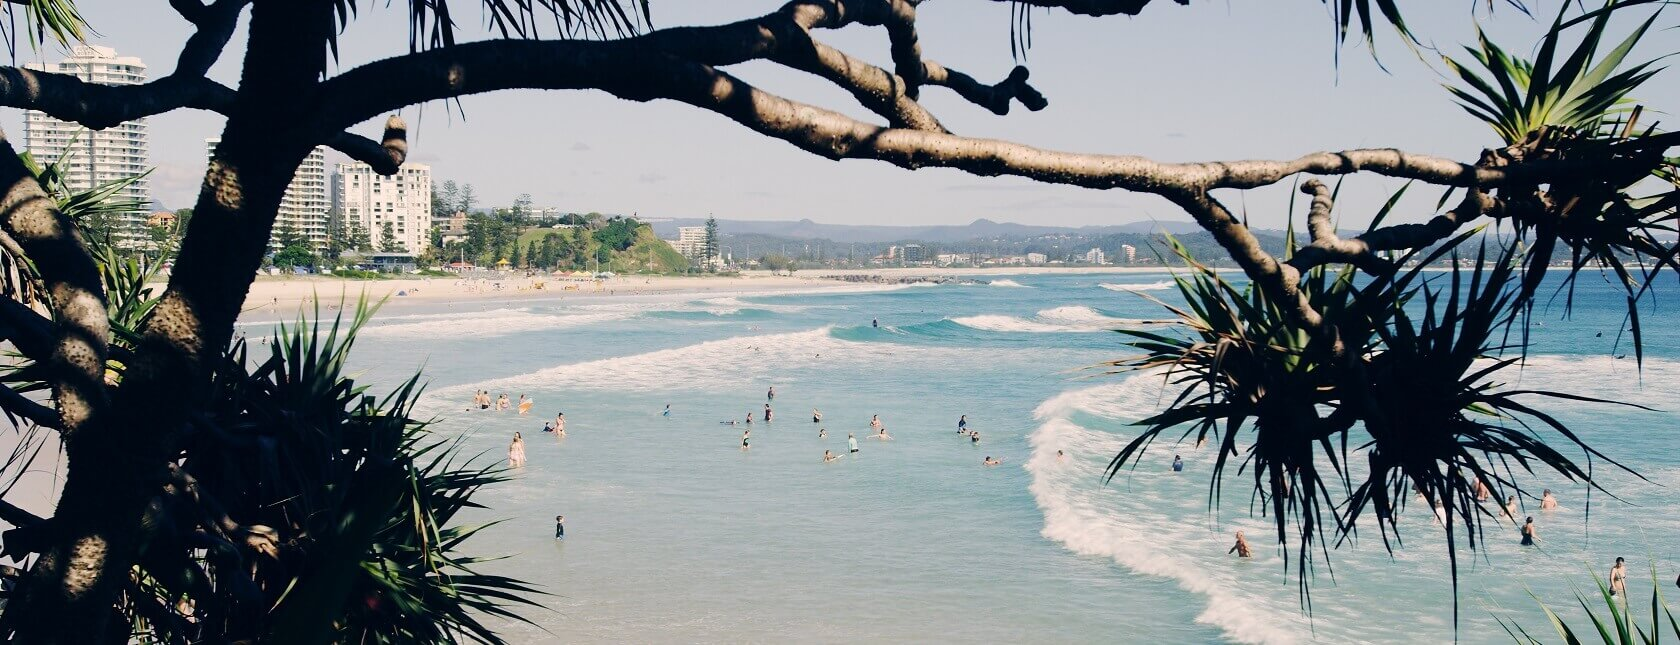 Things to do in Coolangatta